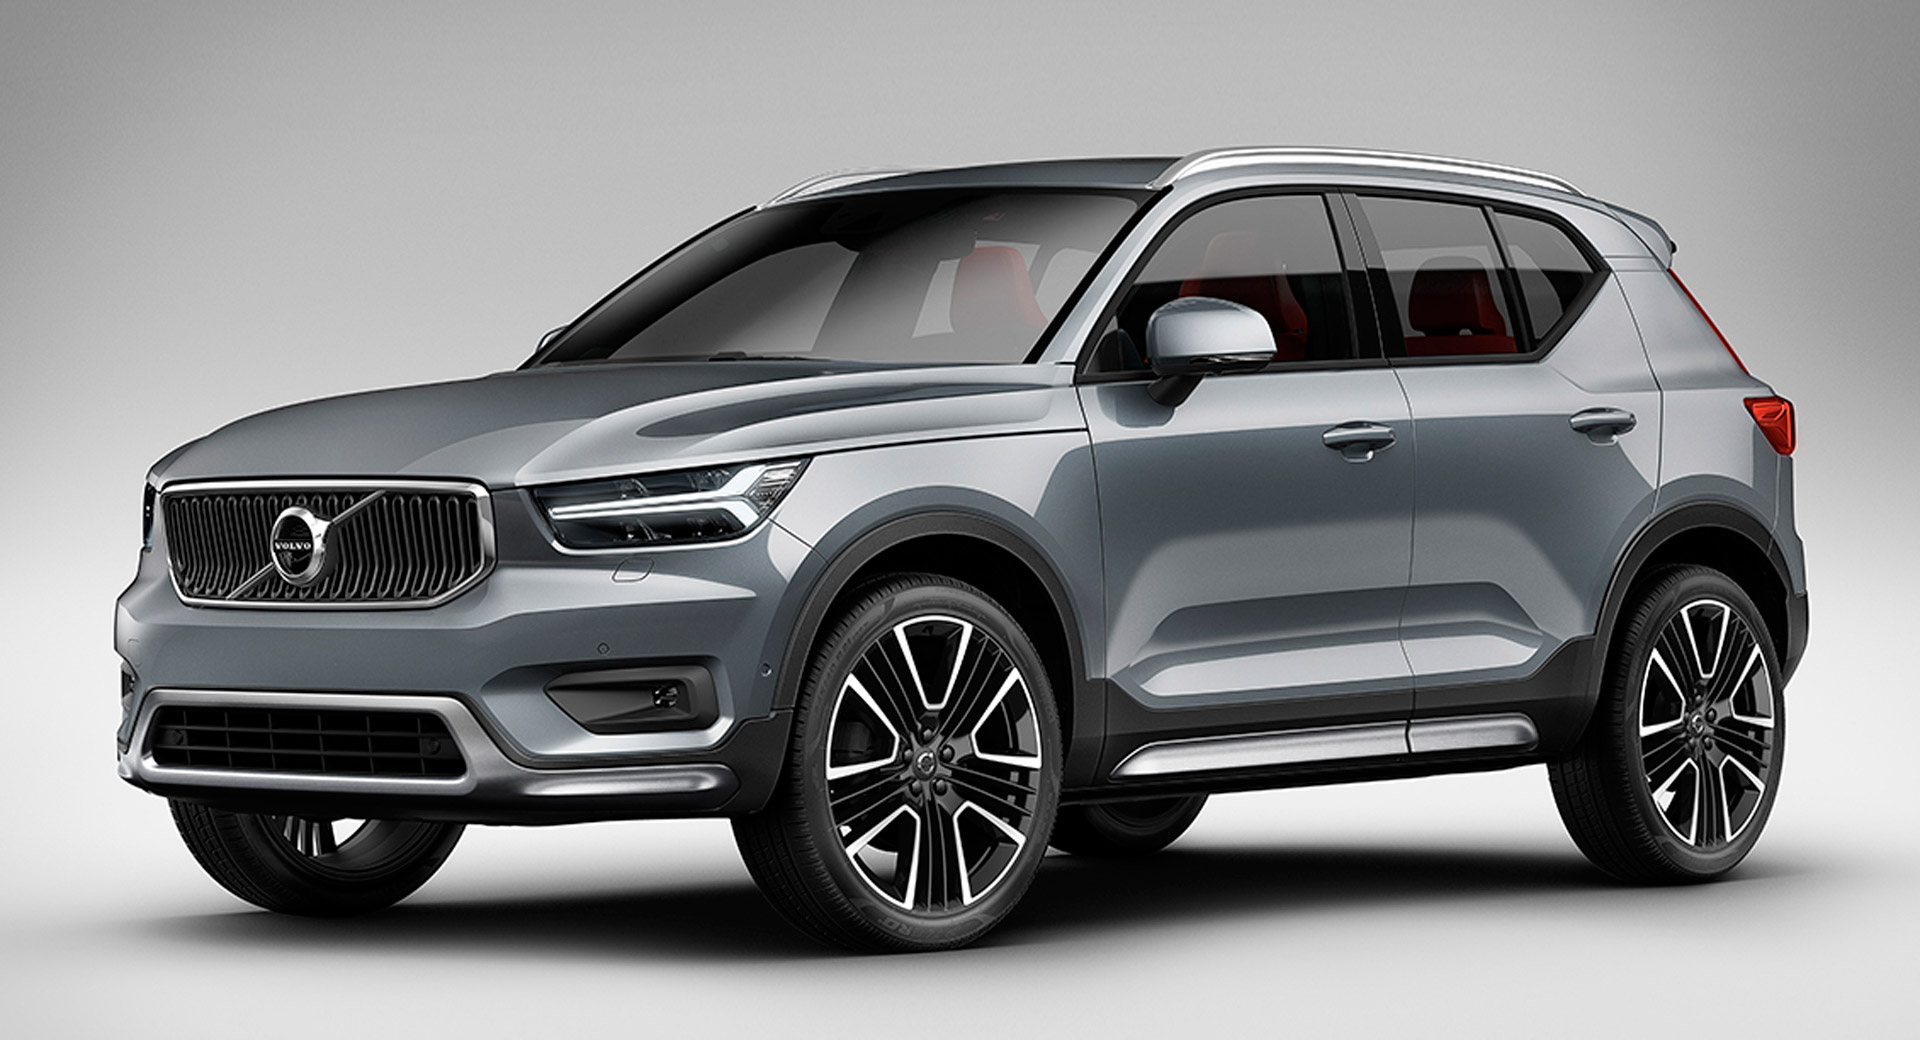 Volvo XC40 Gets Sportier With New Exterior Styling Kit | Carscoops